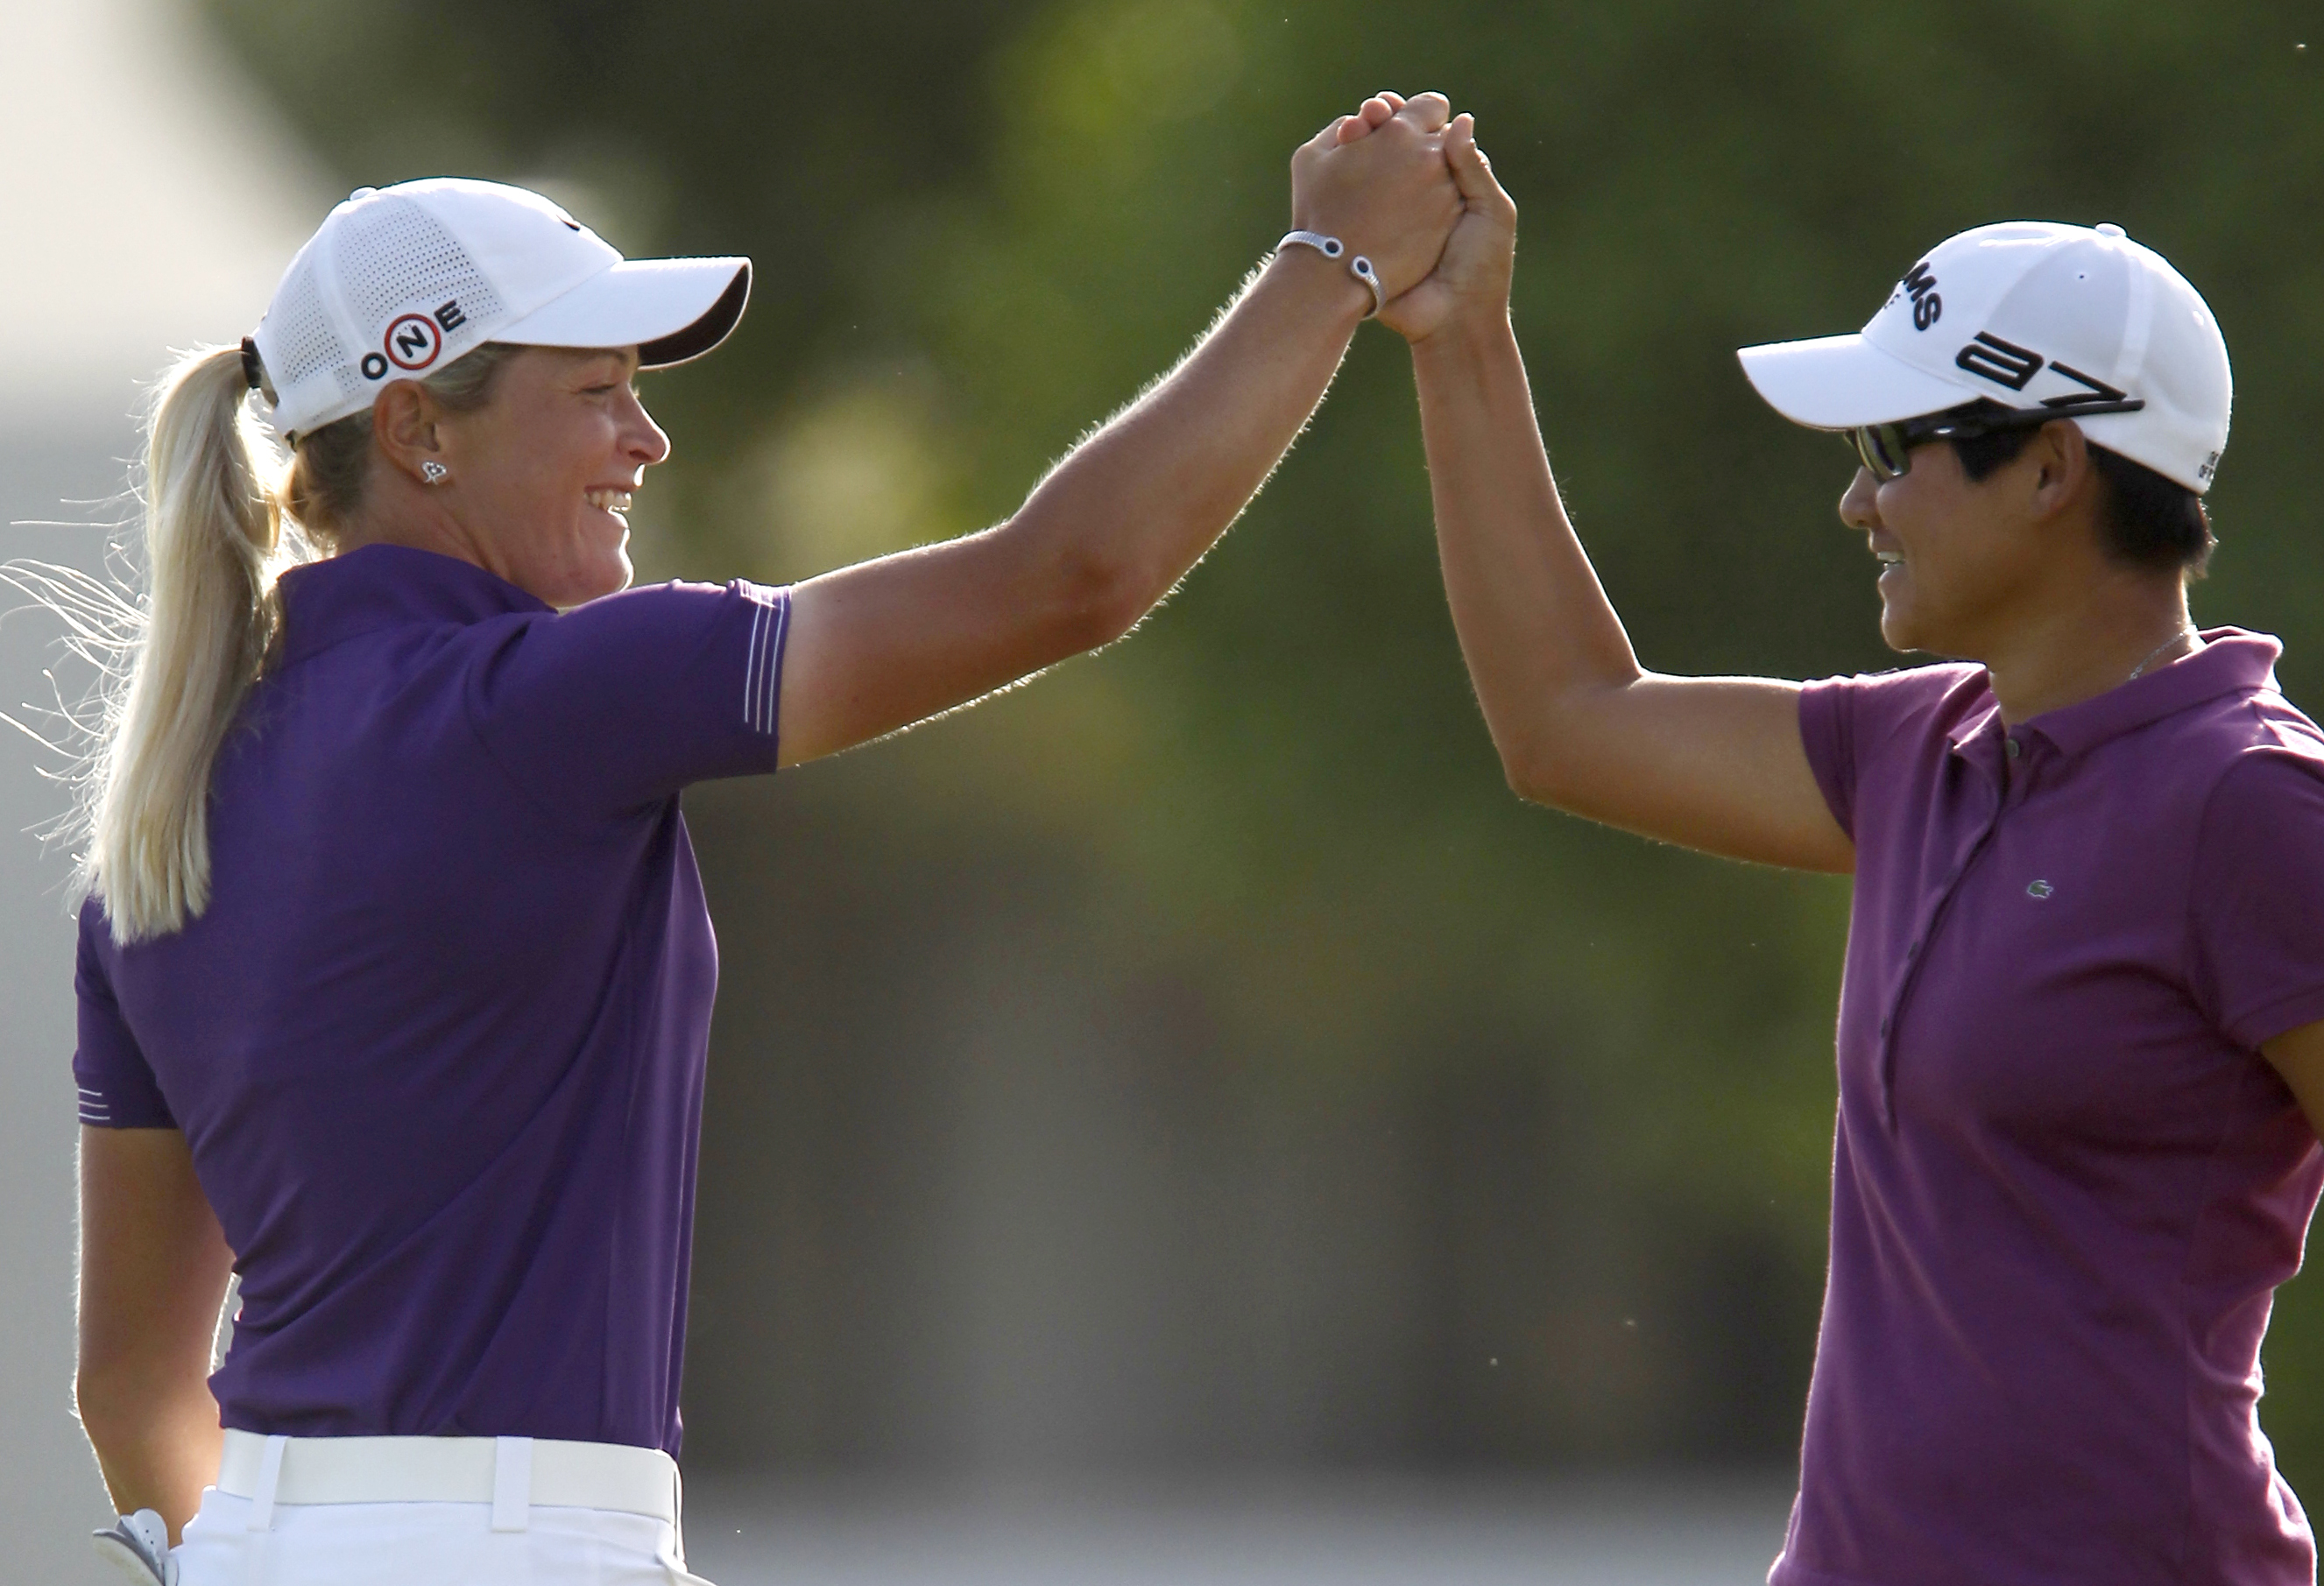 Suzann Pettersen, of Norway, and Yani Tseng, of Taiwan, celebrate a pair of birdies on the 18th hole during the third round of the LPGA Kraft Nabisco ...